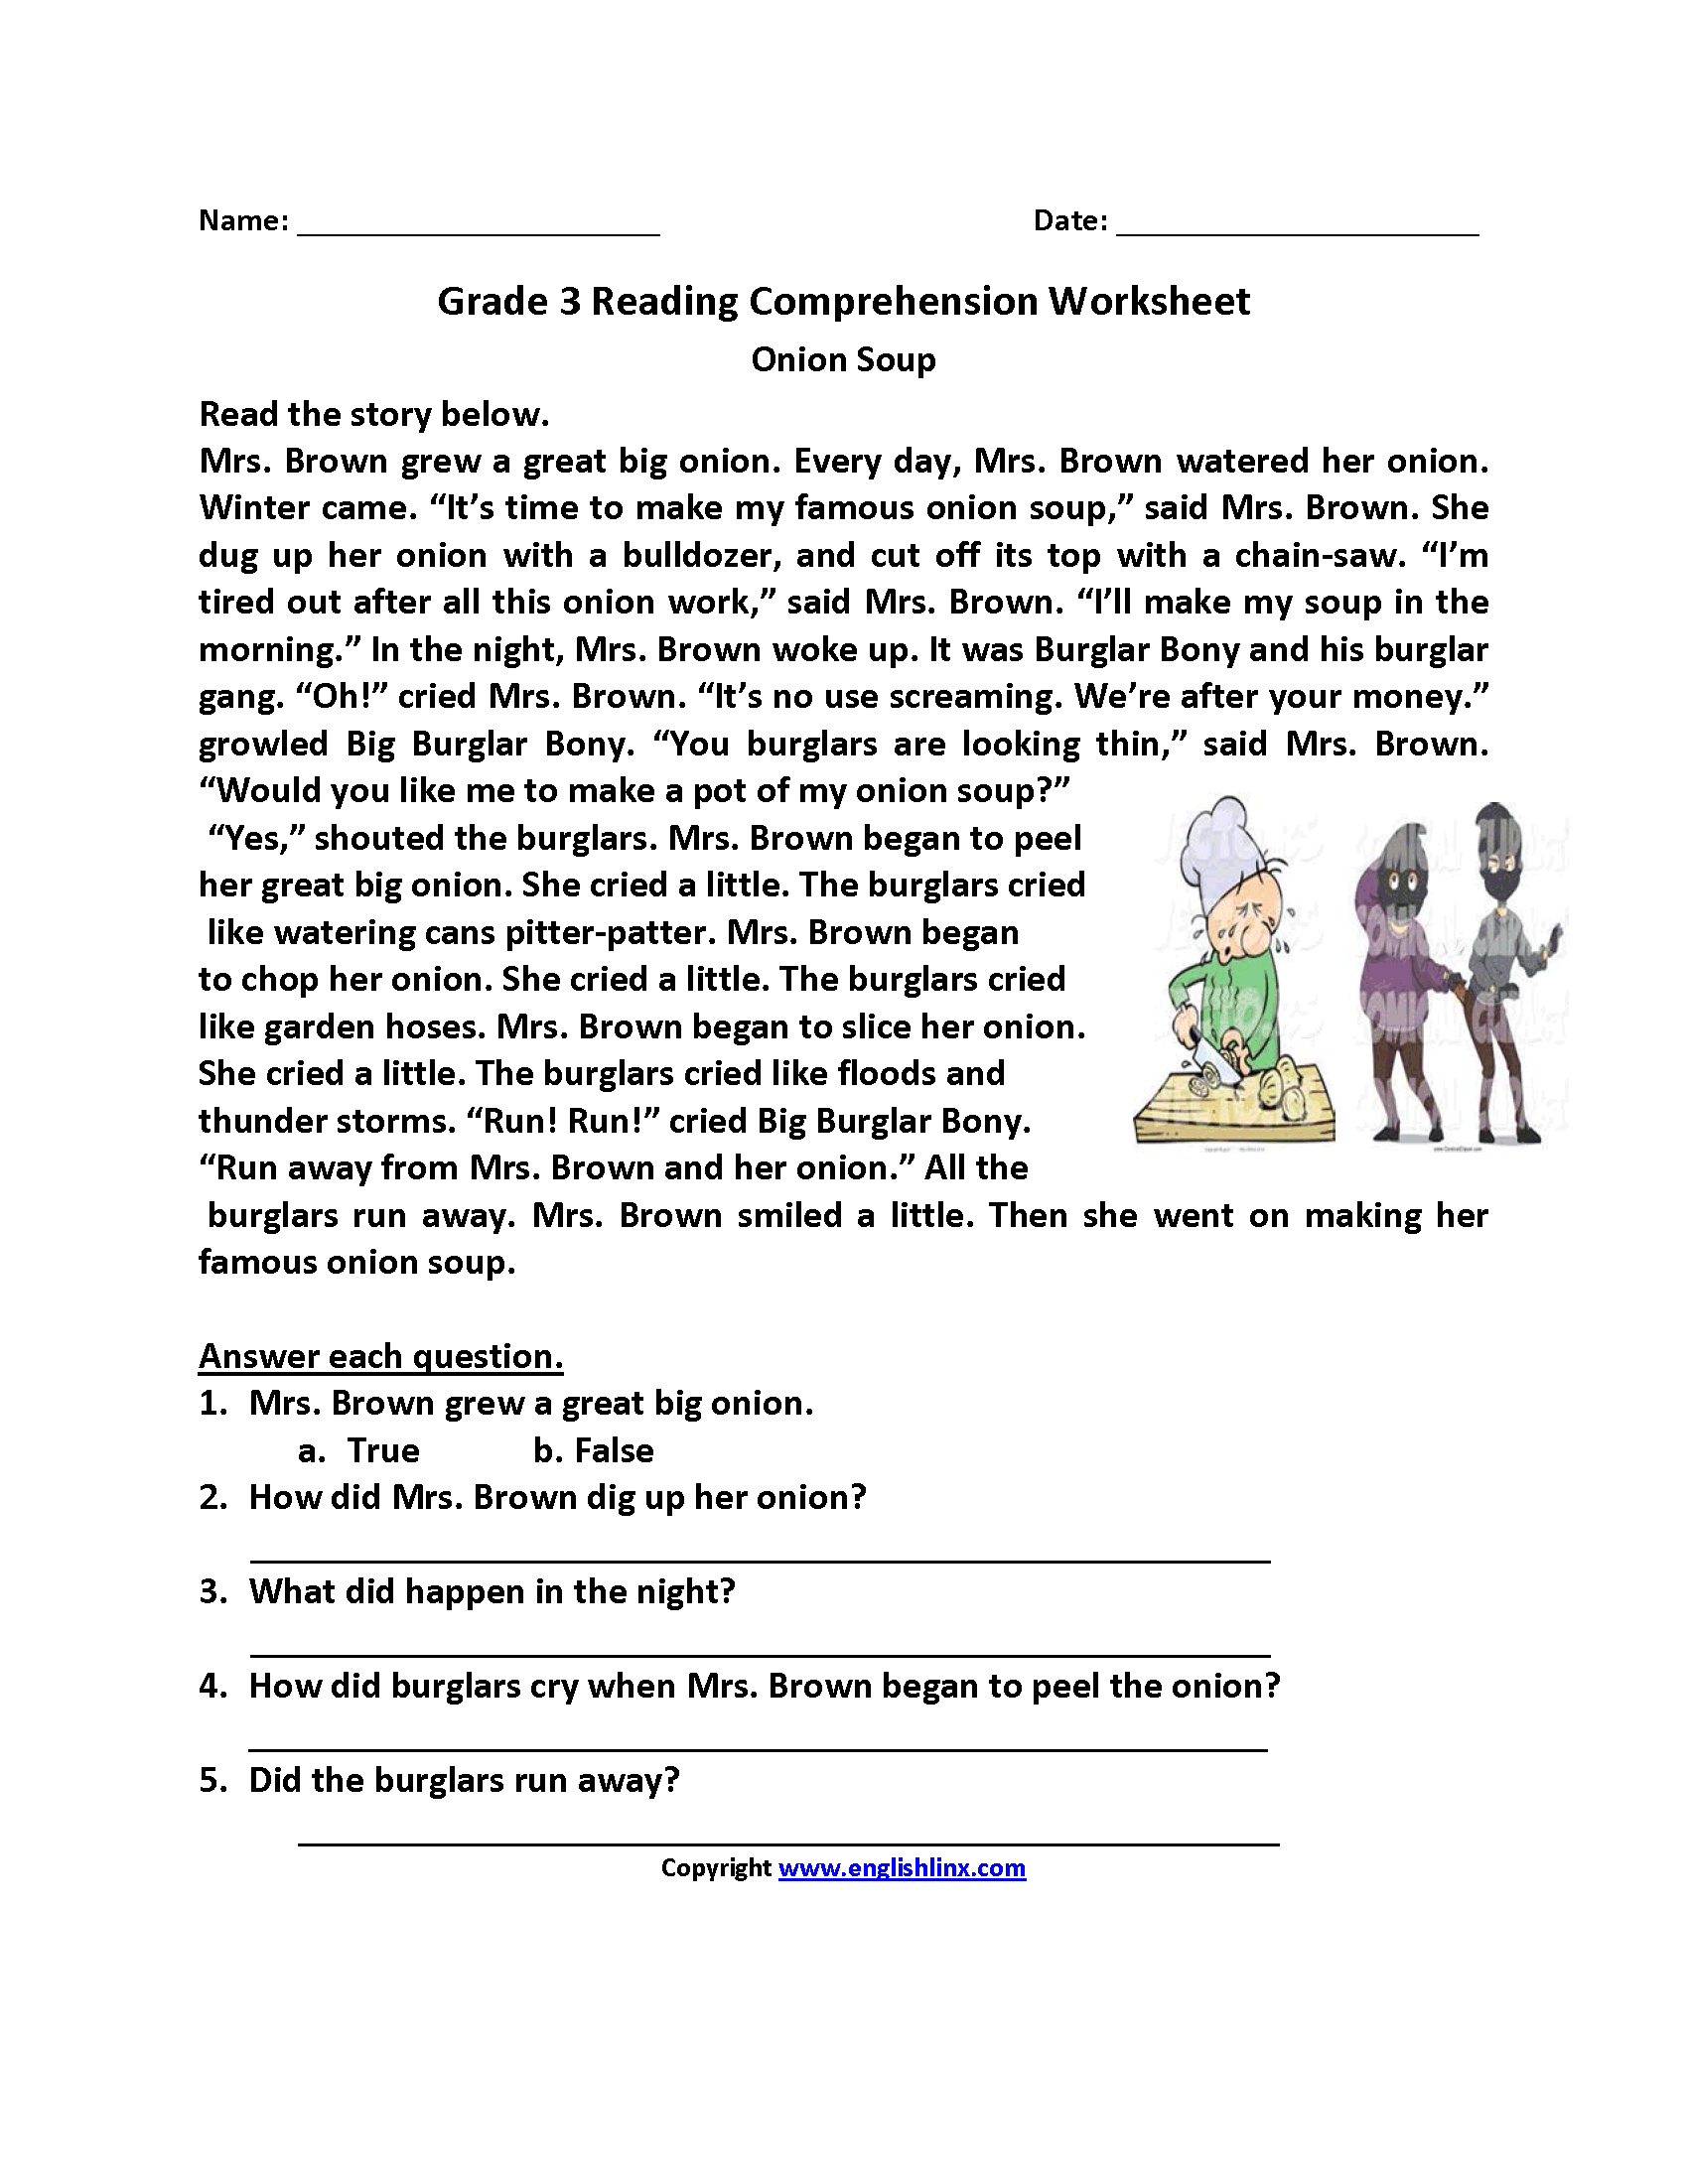 3Rd Grade Spelling Worksheets | The Answers To Everyday Spelling | Free Printable 3Rd Grade Reading Worksheets